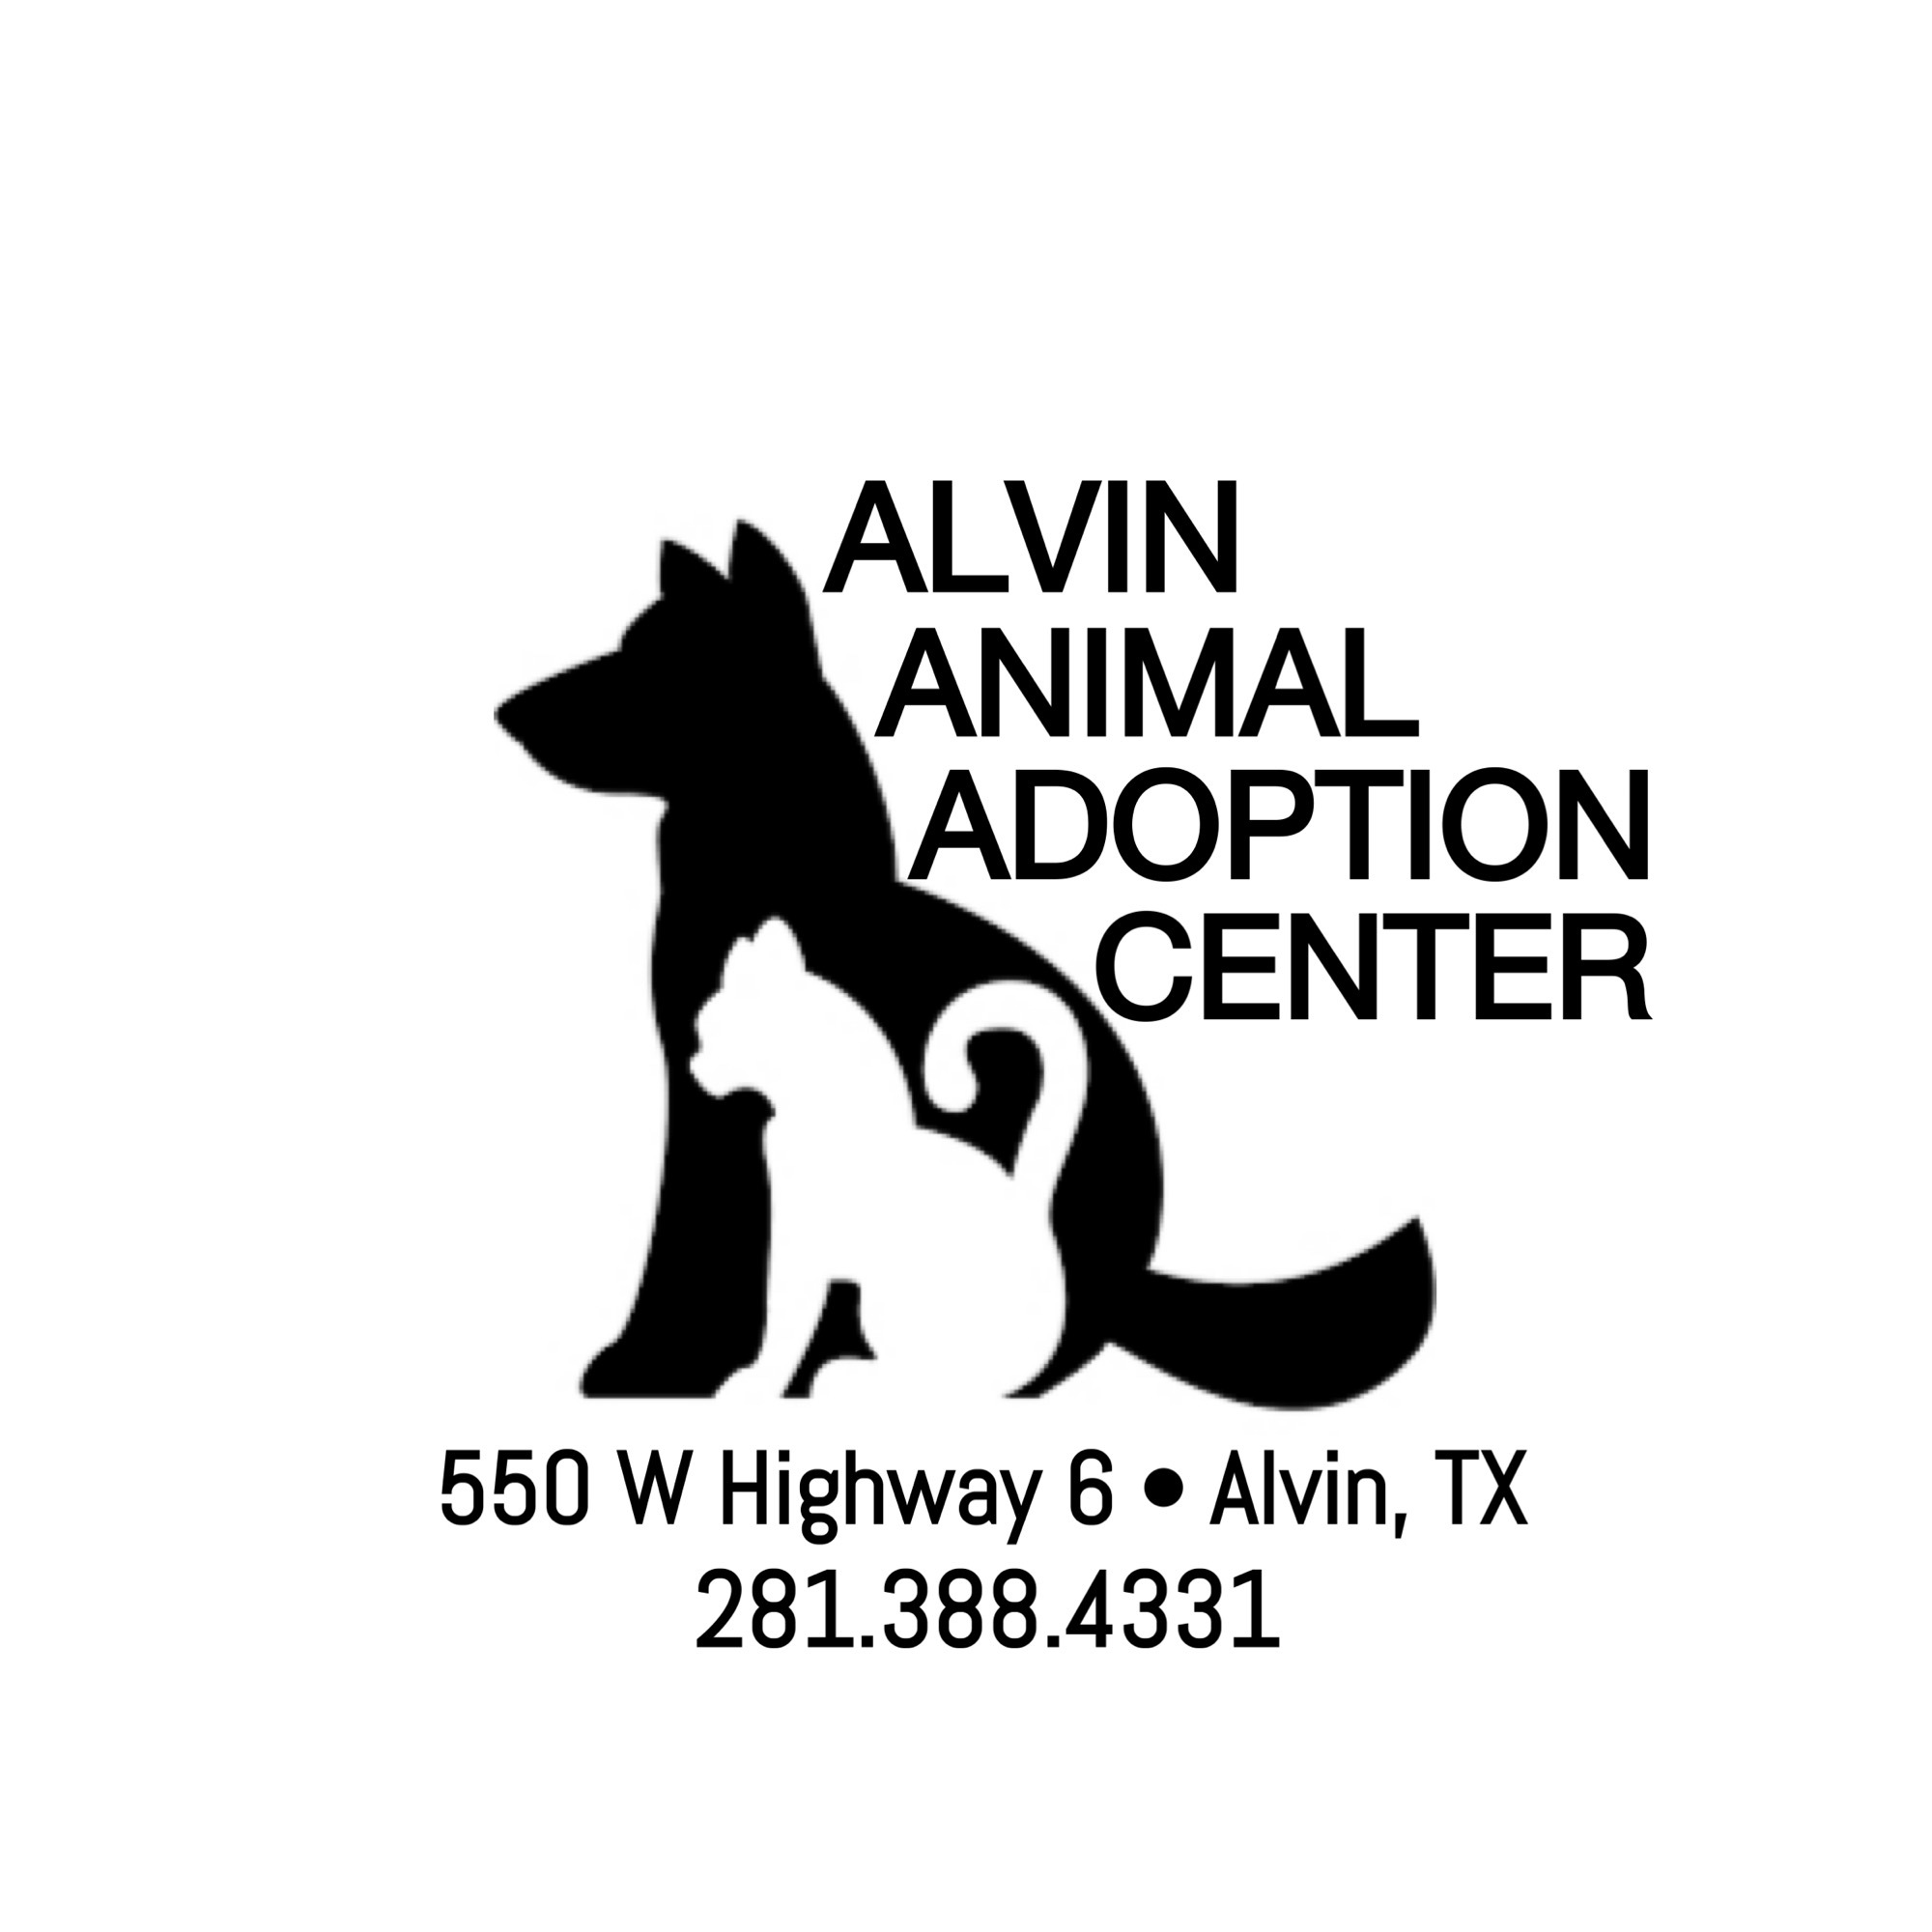 City of Alvin Animal Adoption Center c/o Alvin Police Department